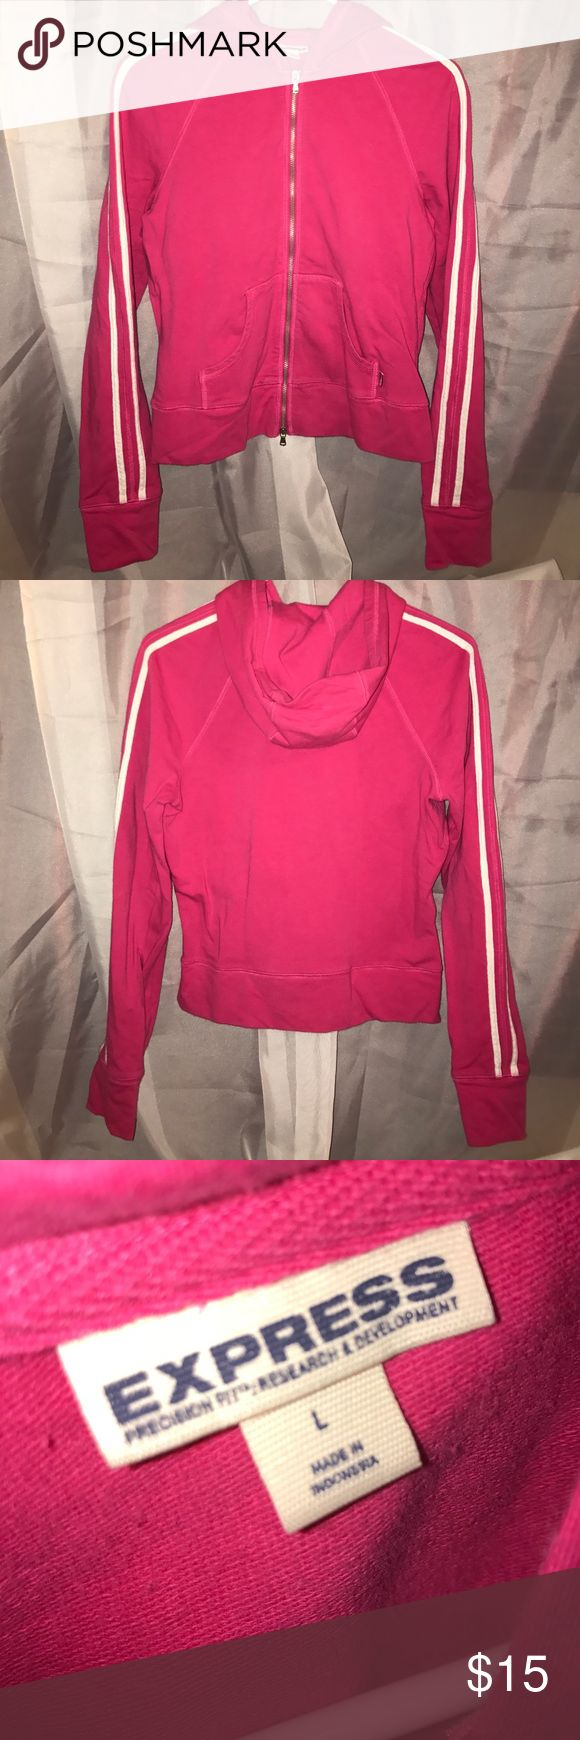 Women's EUC hot pink zip up Excellent condition, wore twice. Hot pink zip up with two white stripes down arm Express Tops Sweatshirts & Hoodies